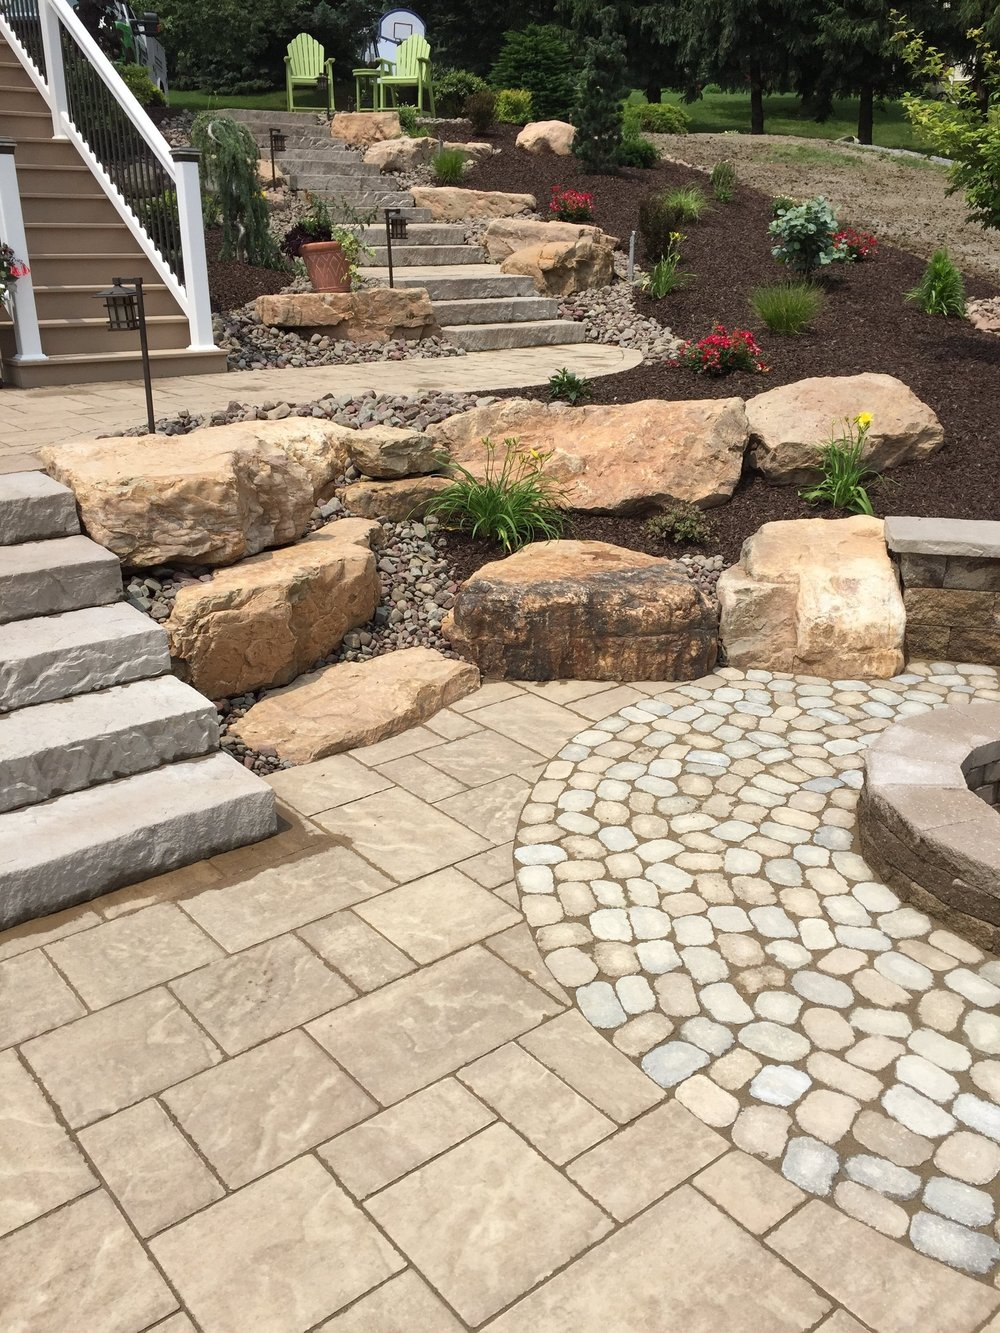 Expert landscape backyard design ideas in Reading, PA